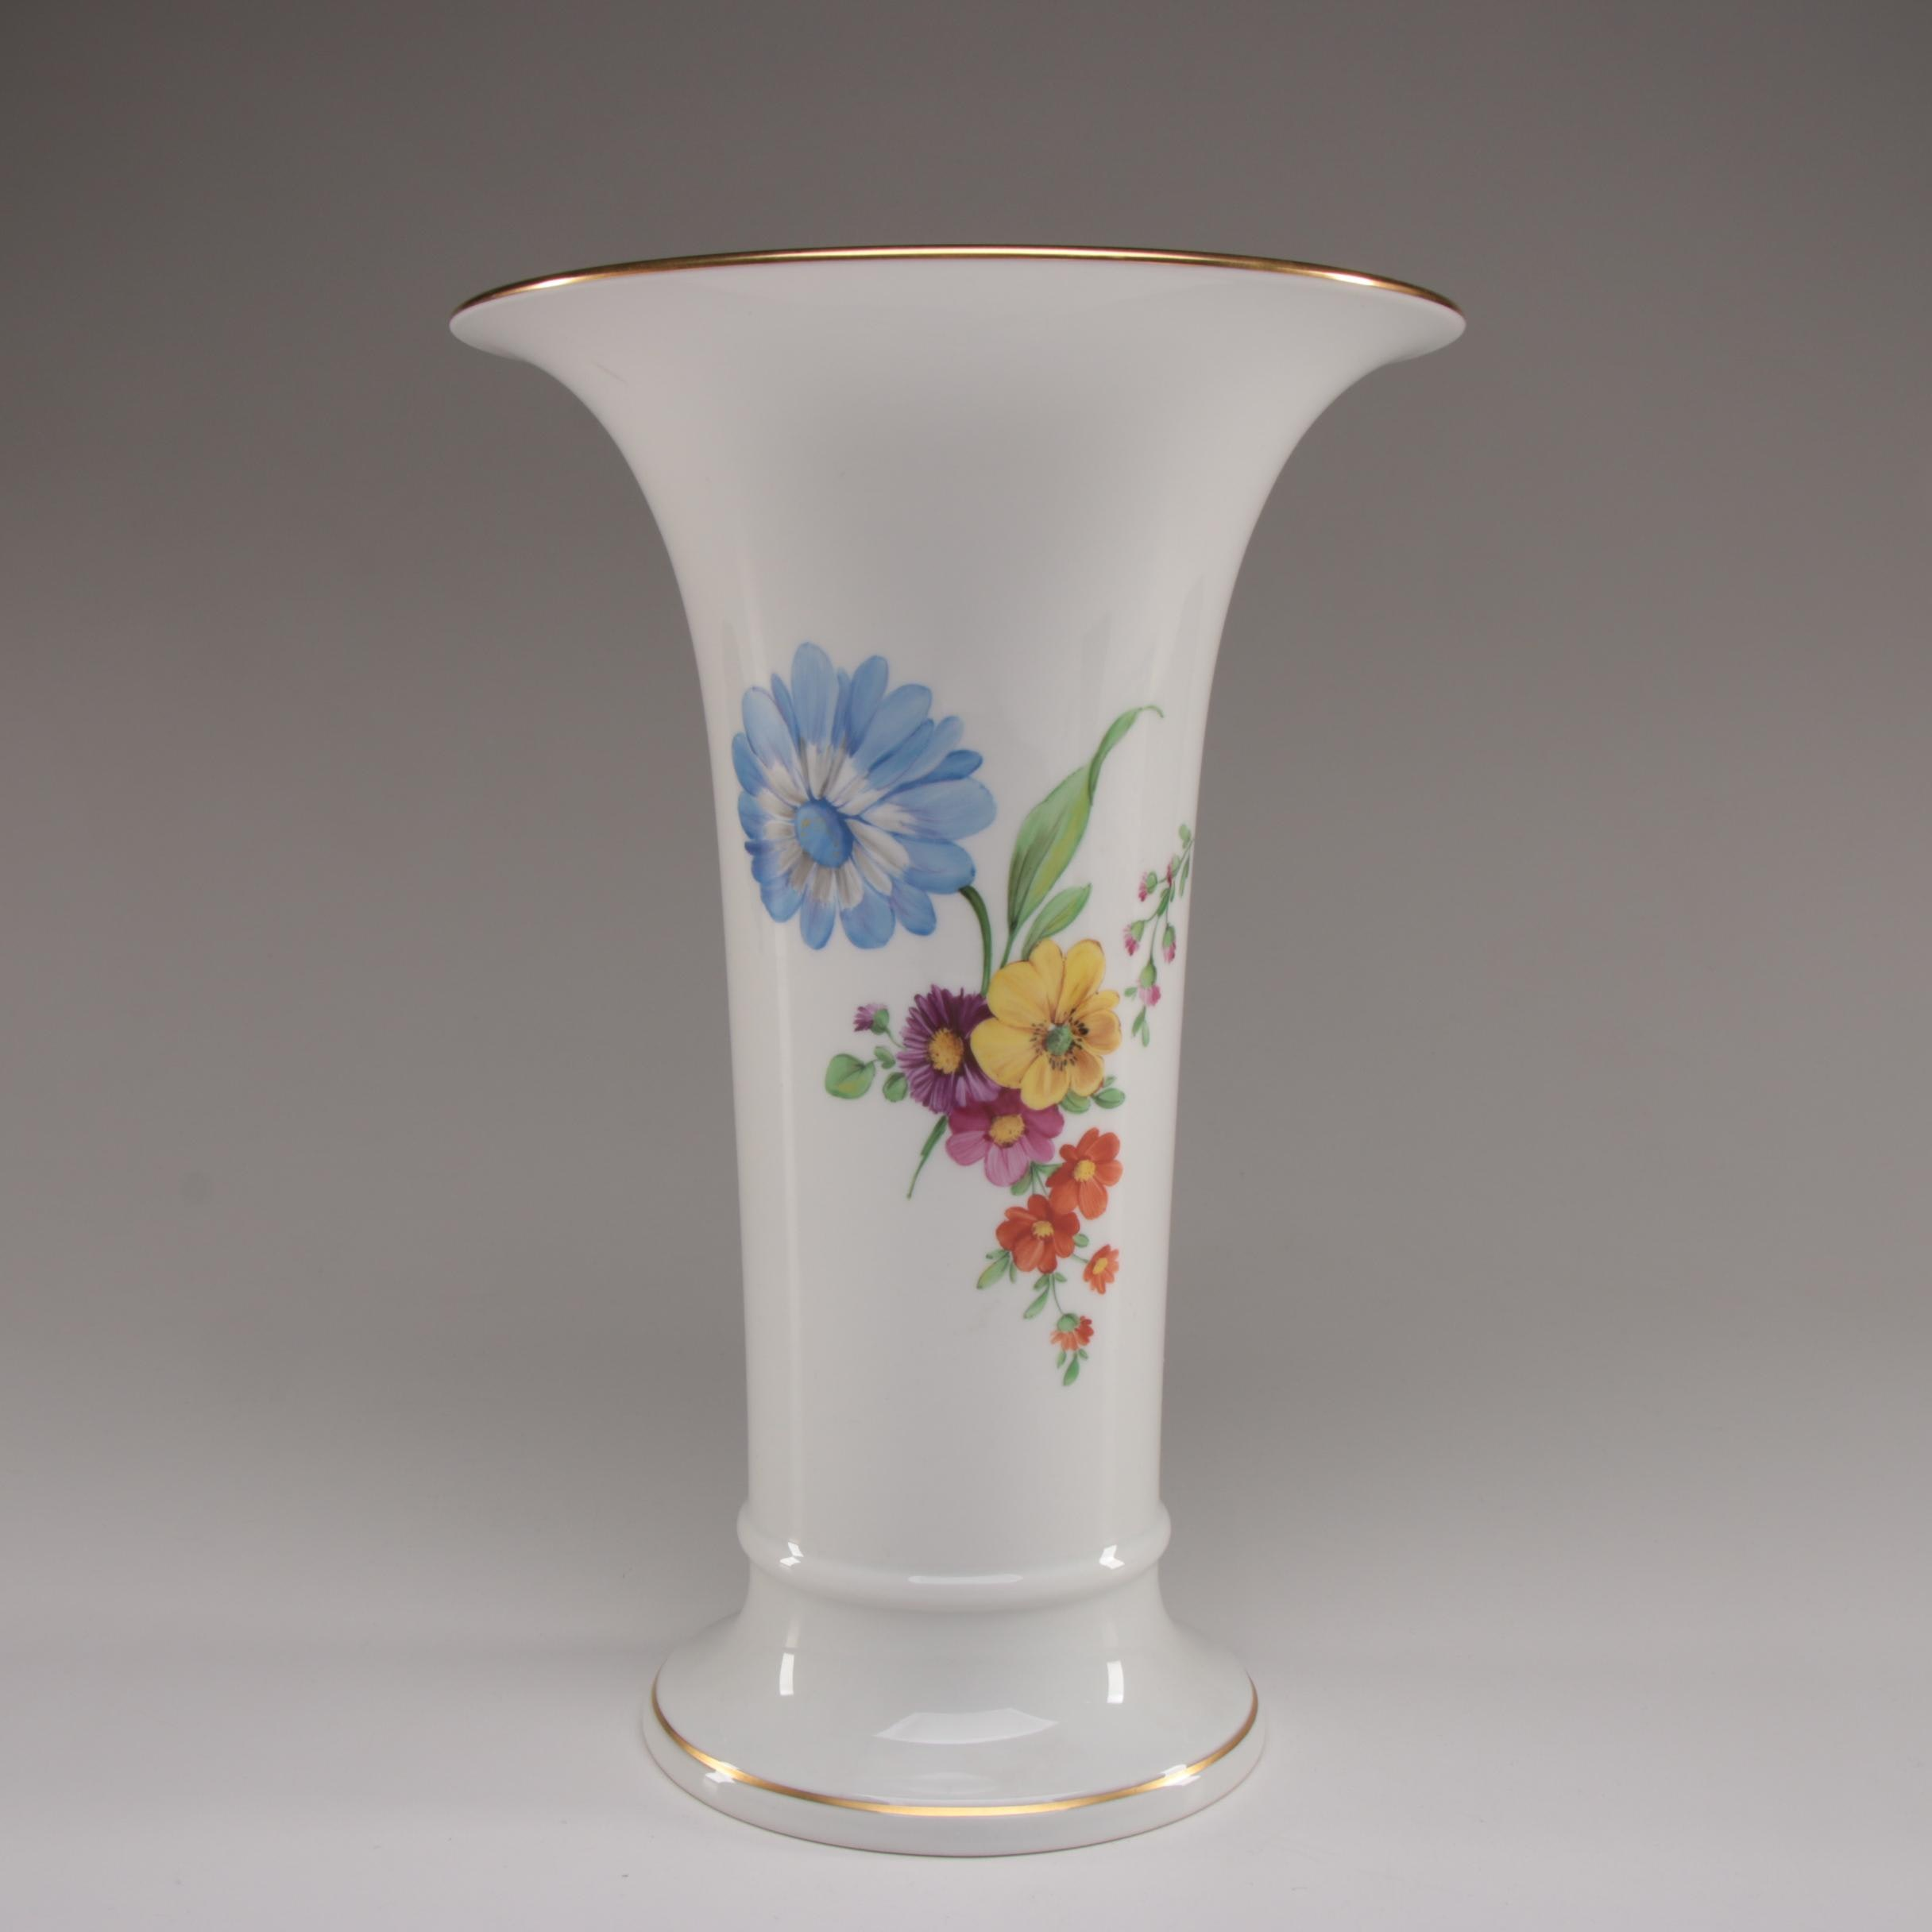 Königliche Porzellan-Manufaktur Porcelain Flower Vase, Early 20th Century